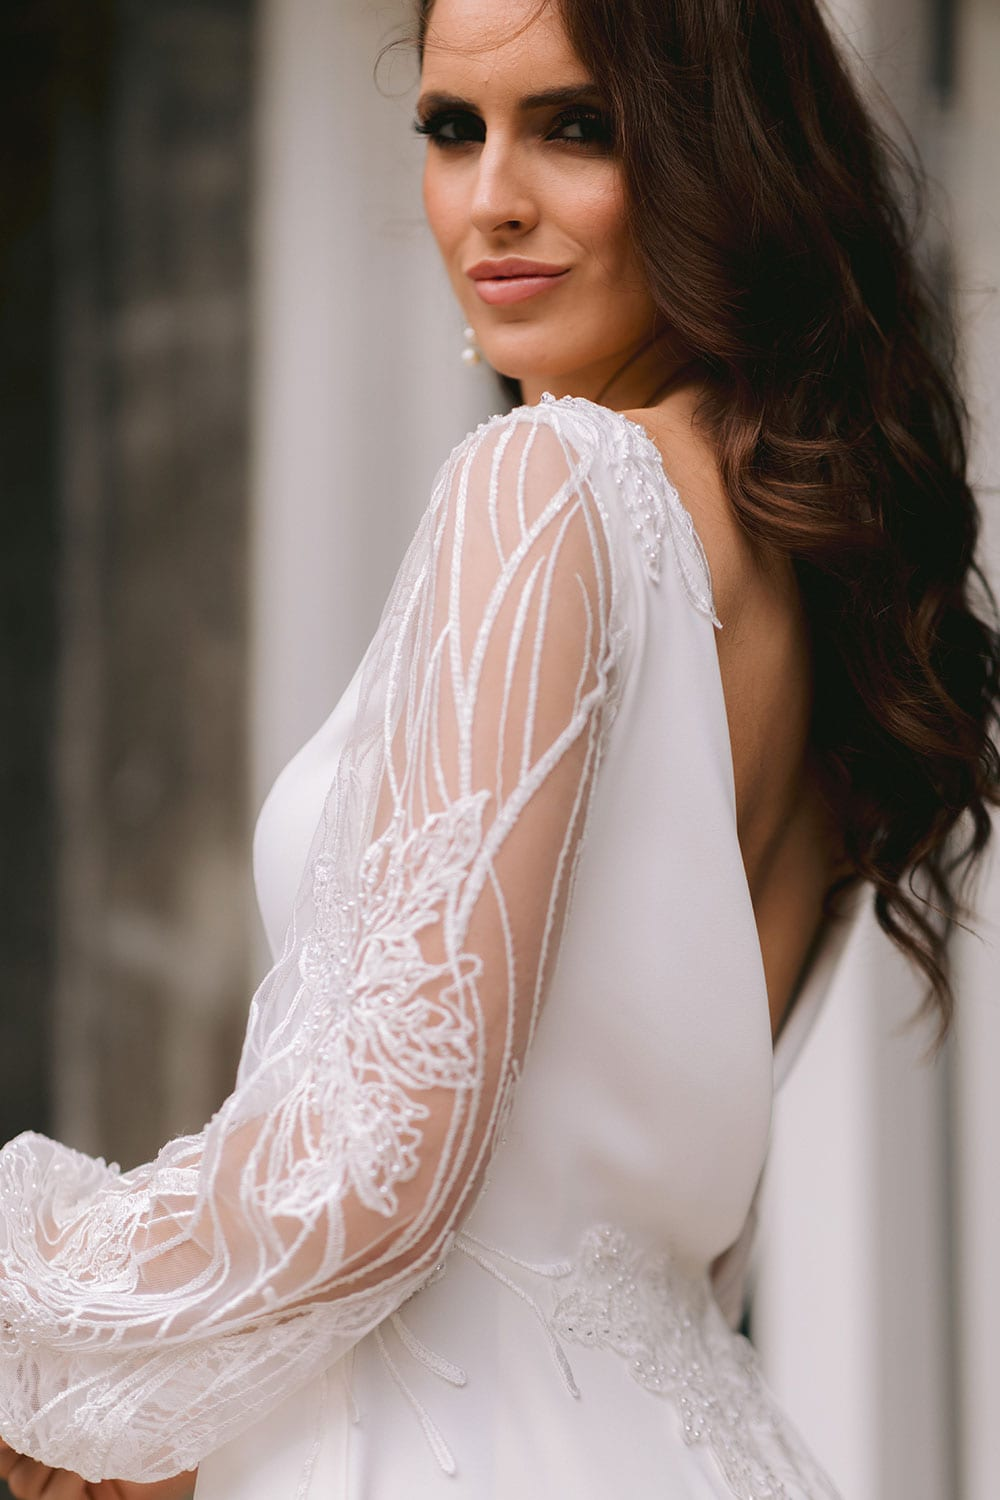 Shiloh Wedding gown from Vinka Design - Beautiful wedding dress with fitted bodice and demure boat neckline, complemented with an open back. Sheer lace sleeves tapered at the wrist with tiny pearl buttons. Lace appliqued waist and train. Model wearing gown showing open dress sleeve lace detail